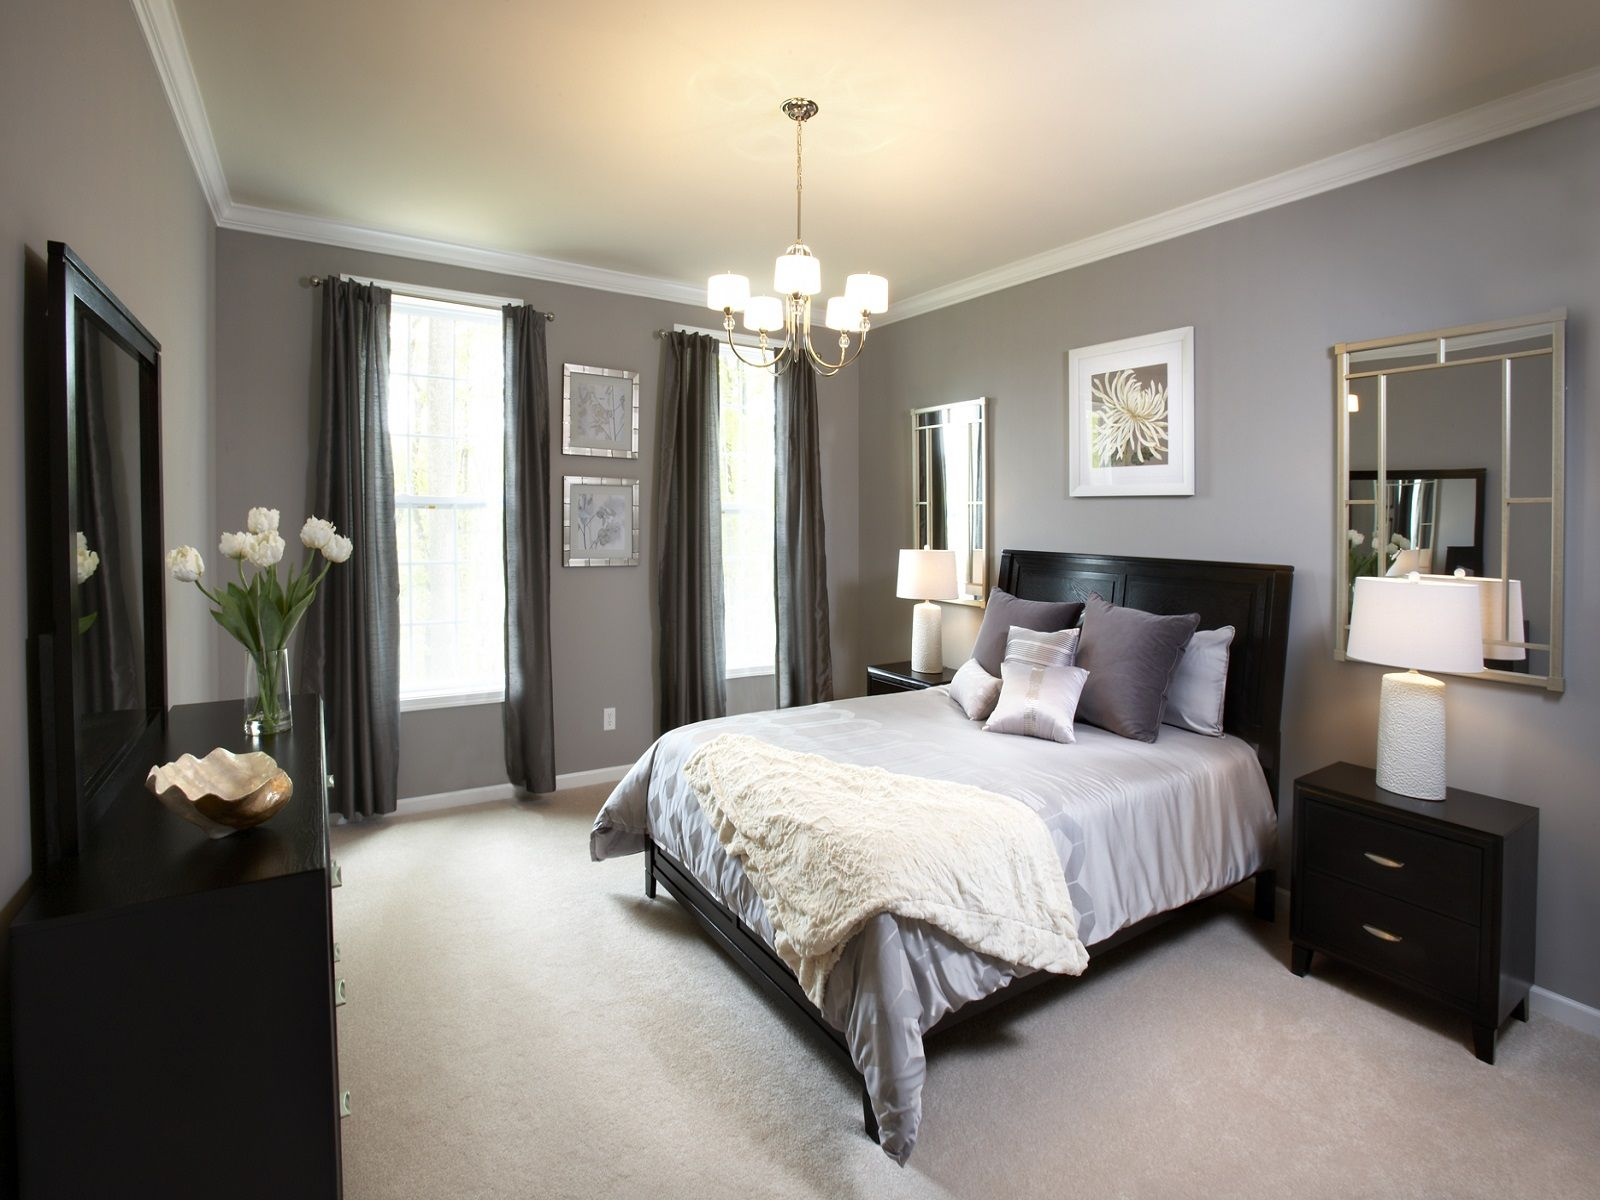 Awesome Bedroom Shade Chandelier Over White Bedding Ideas With Black Wooden Base Bed Frames As Well A Remodel Bedroom Gray Master Bedroom Master Bedrooms Decor